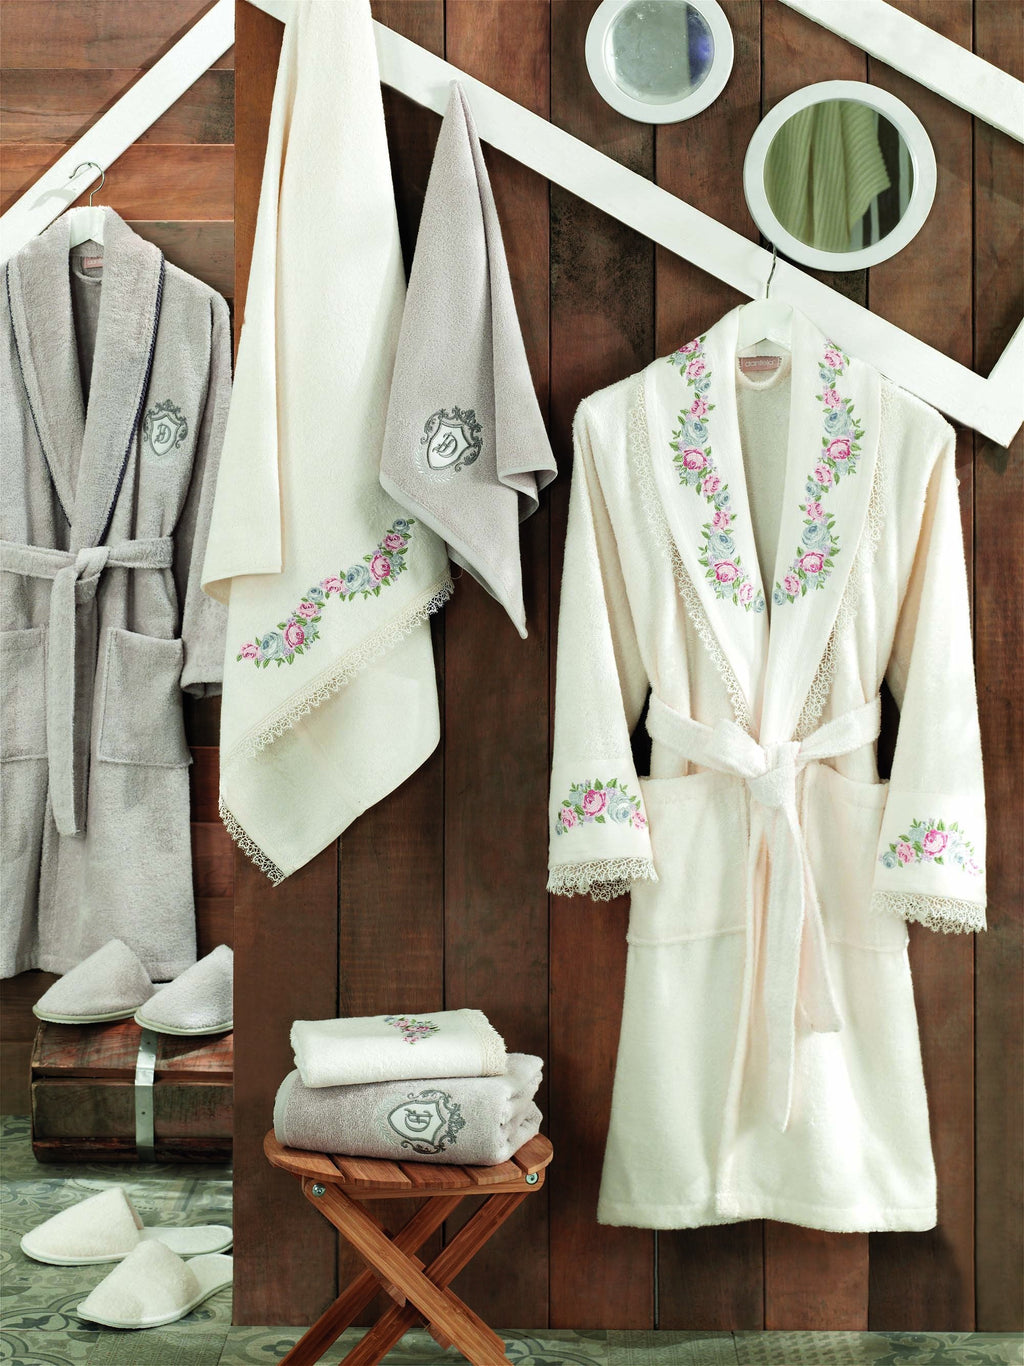 8PCS EMBROIDERED BAMBOO BATHROBE FAMILY SET WITH FRENCH GUIPURE - COTTONISH